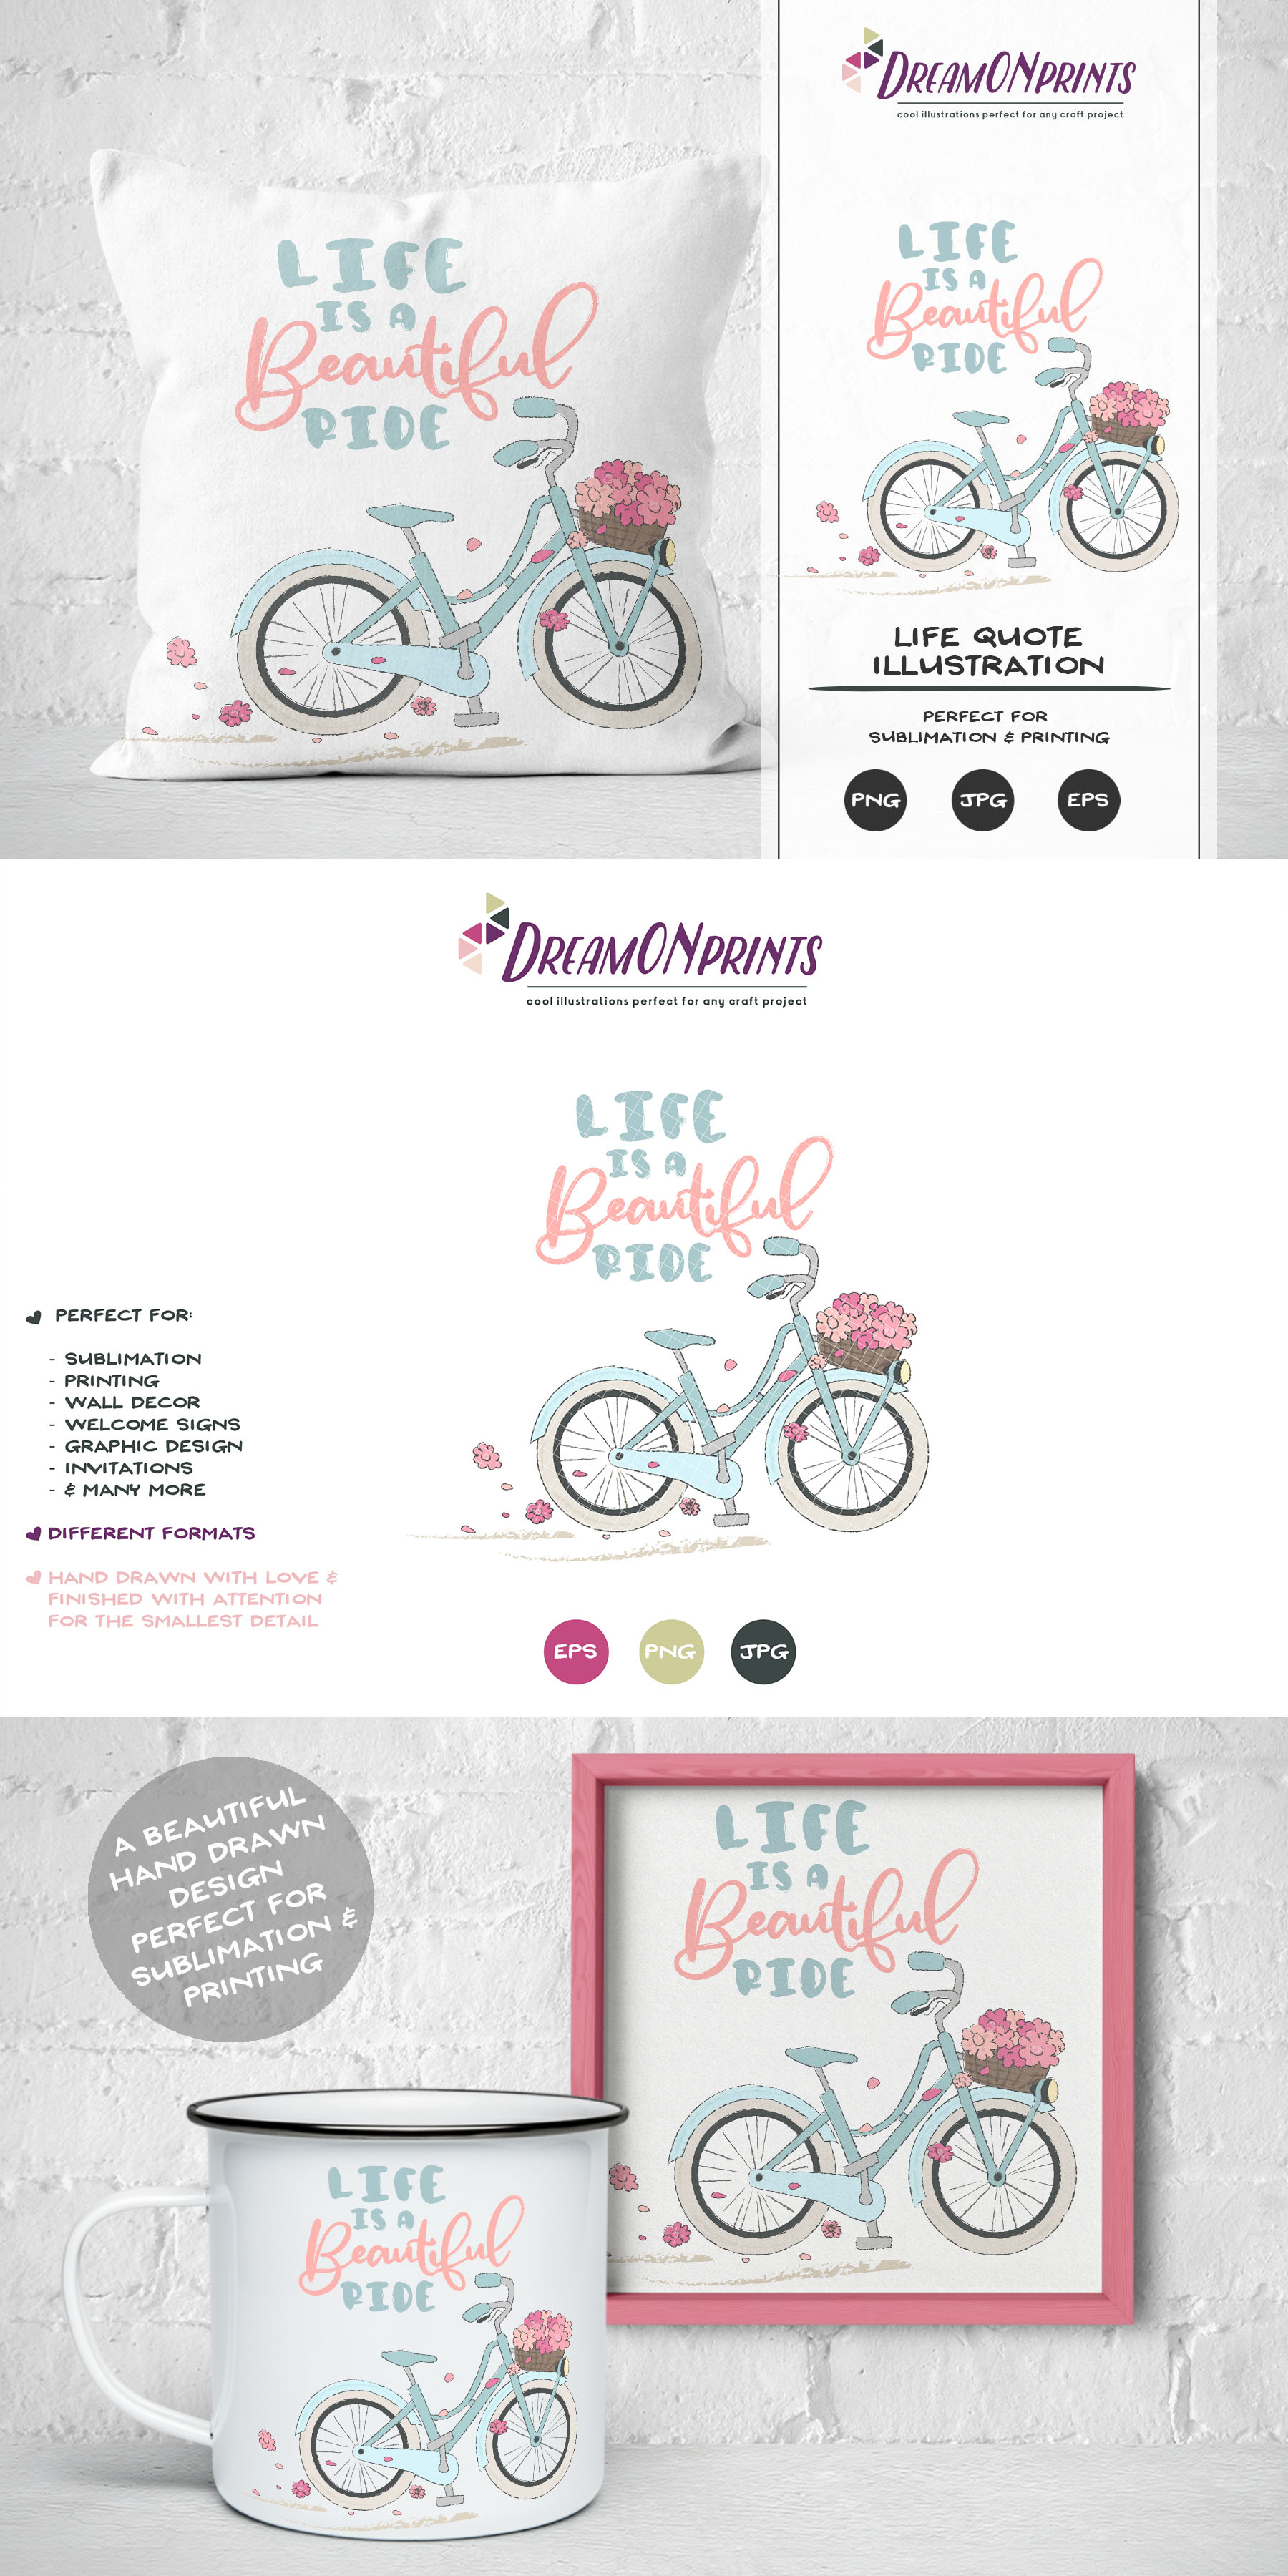 Life is a Beautiful Ride | Sublimation Life Quote with Bike example image 4